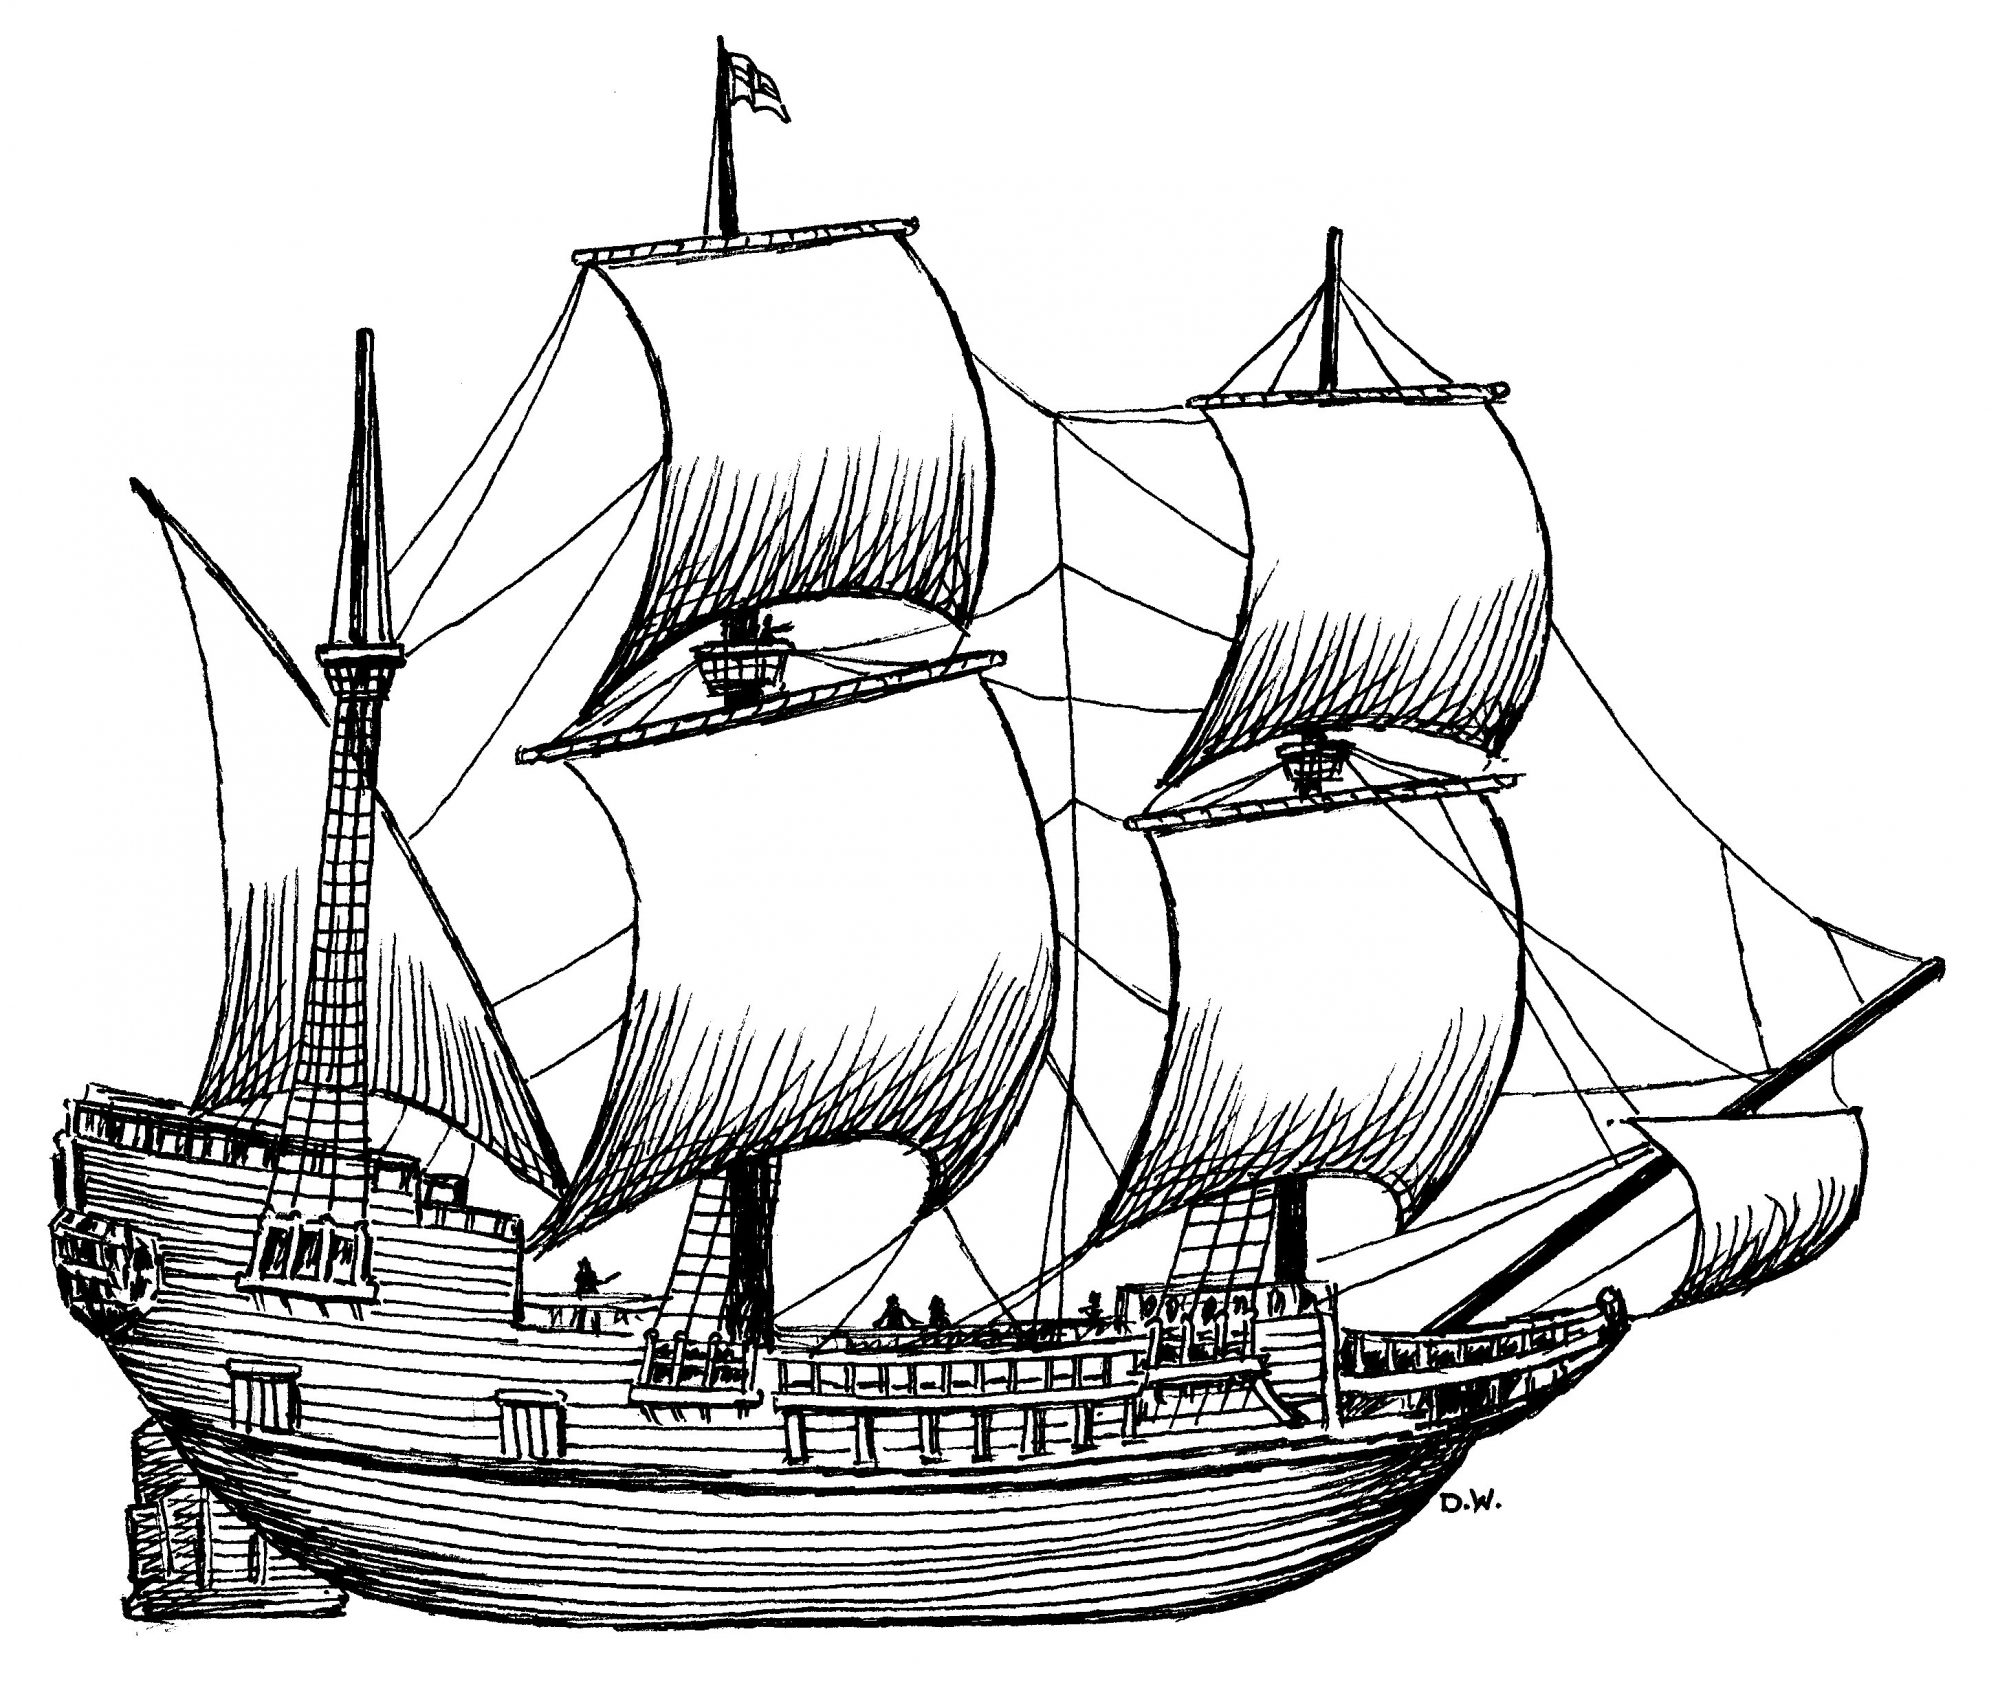 Side view of the Mayflower, which took Pilgrims to New England in 1620.